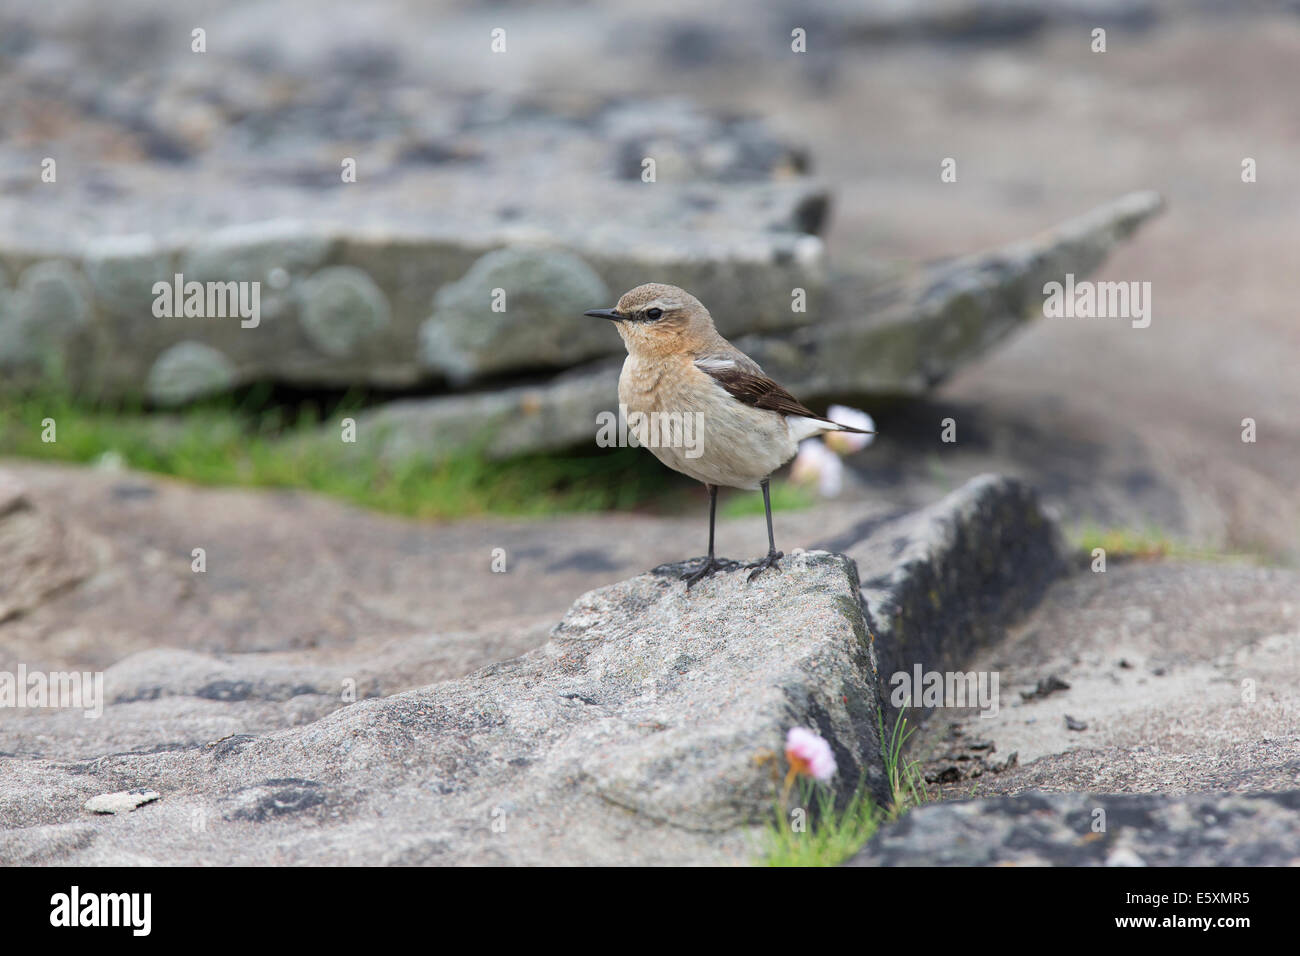 Female Northern Wheatear; Oenanthe oenanthe on a rock - Stock Image